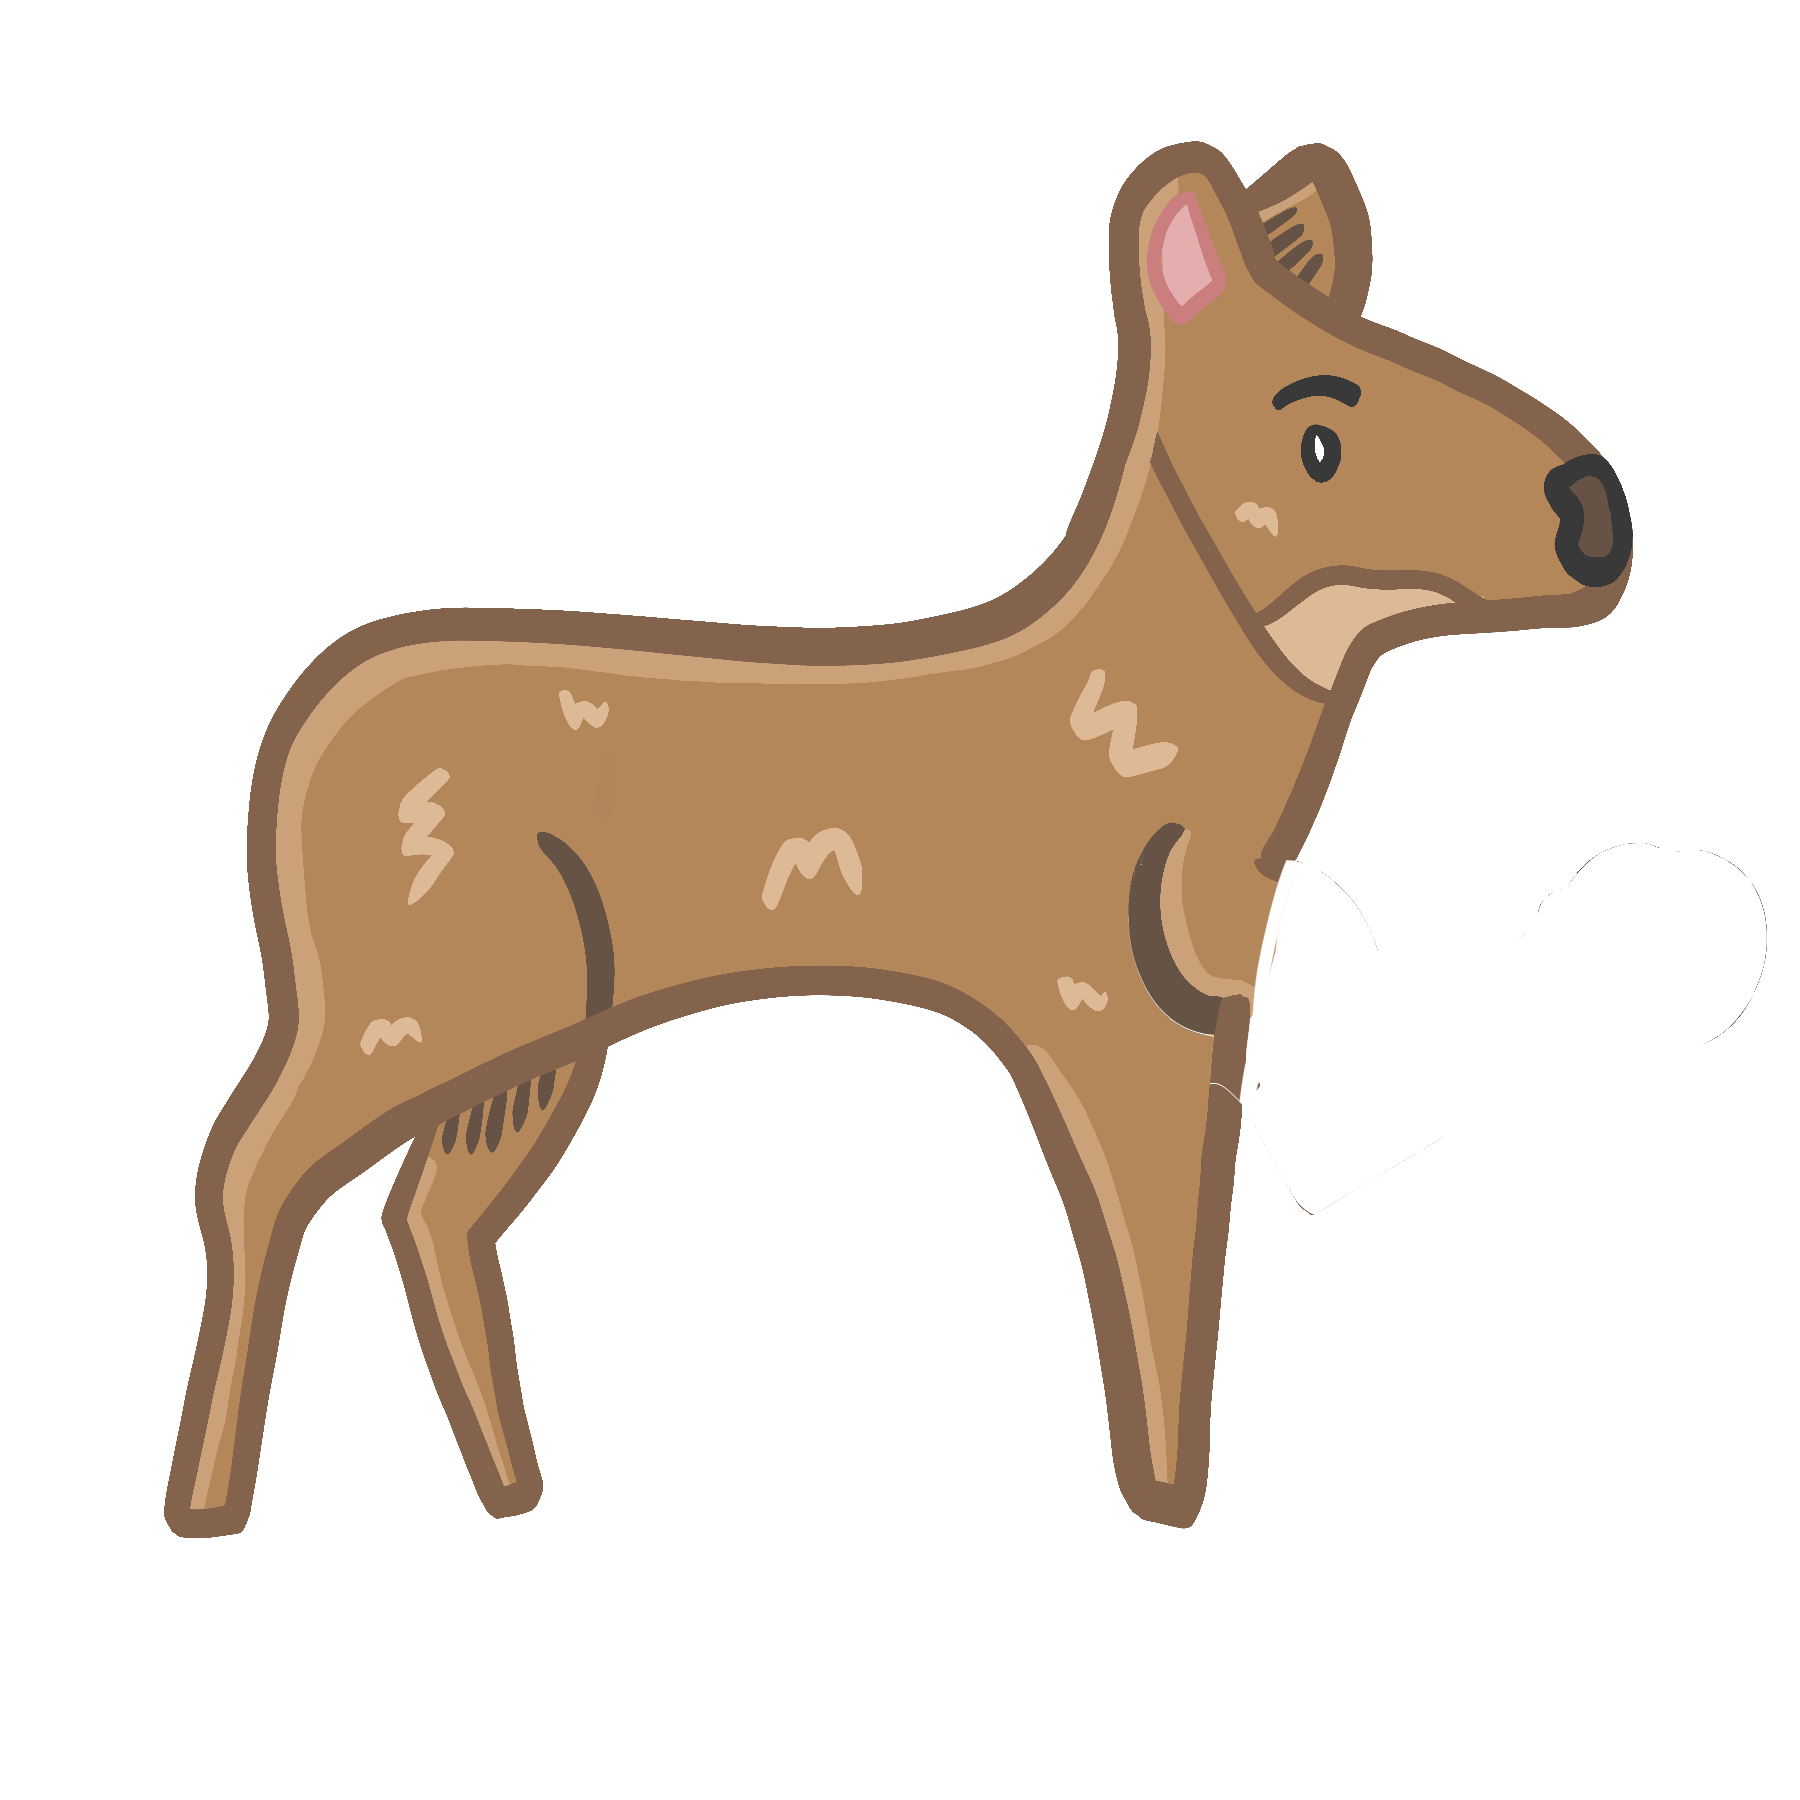 Image of a cartoon deer with a dumbbell in its front leg/arm. On click the deer lifts the weight.